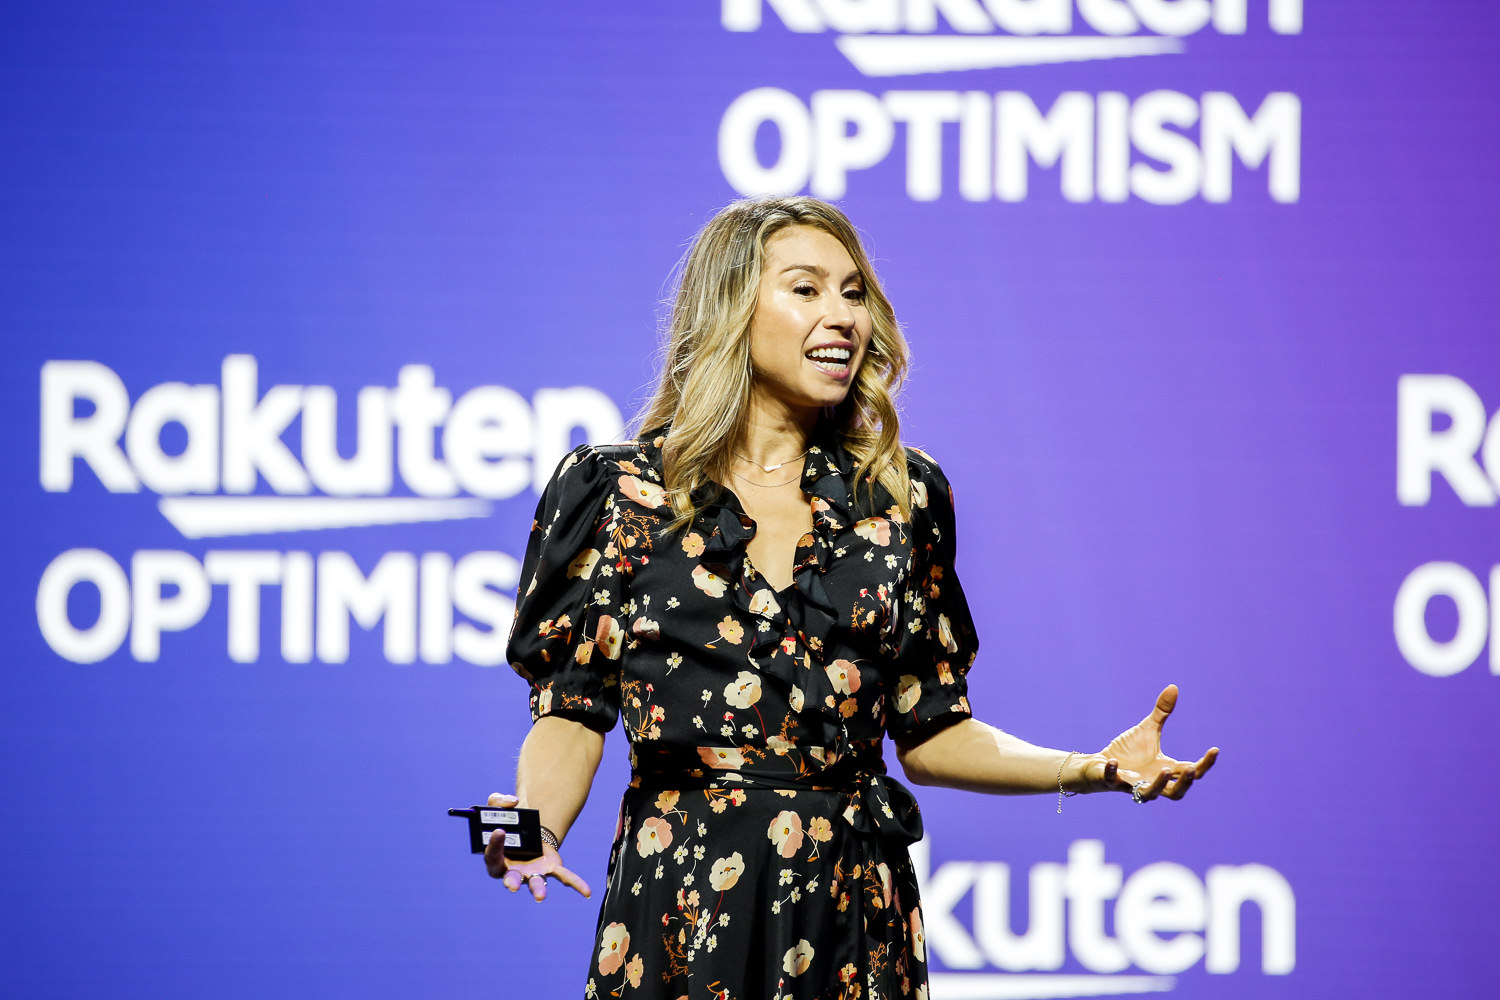 Jenny Fleiss discussed modern consumer expectations and where commerce is heading in the future at Rakuten Optimism 2019 in San Francisco.